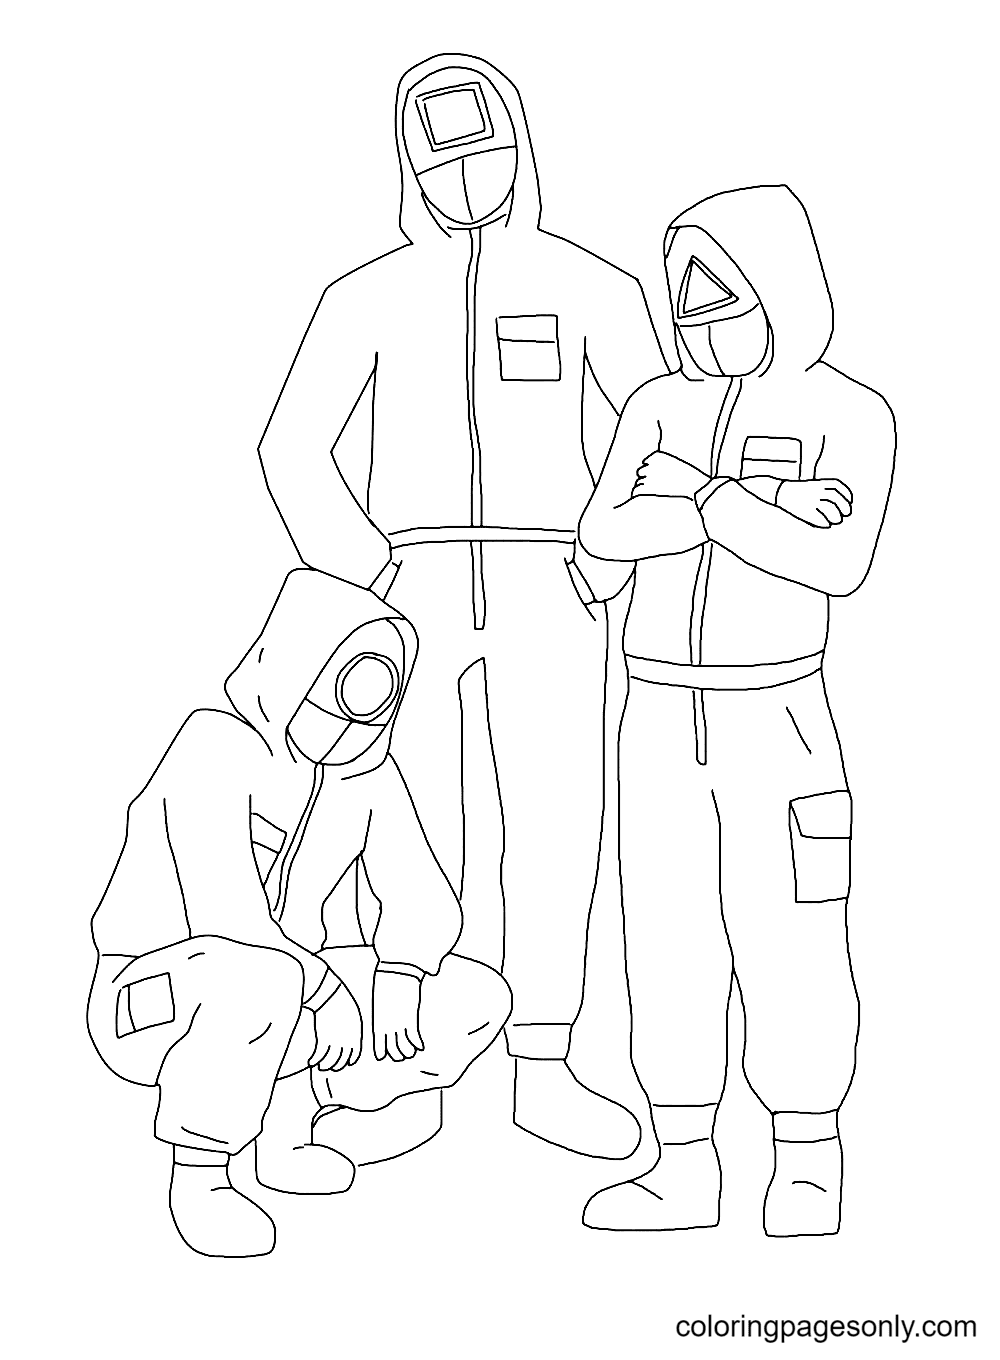 Print Squid Game Coloring Page